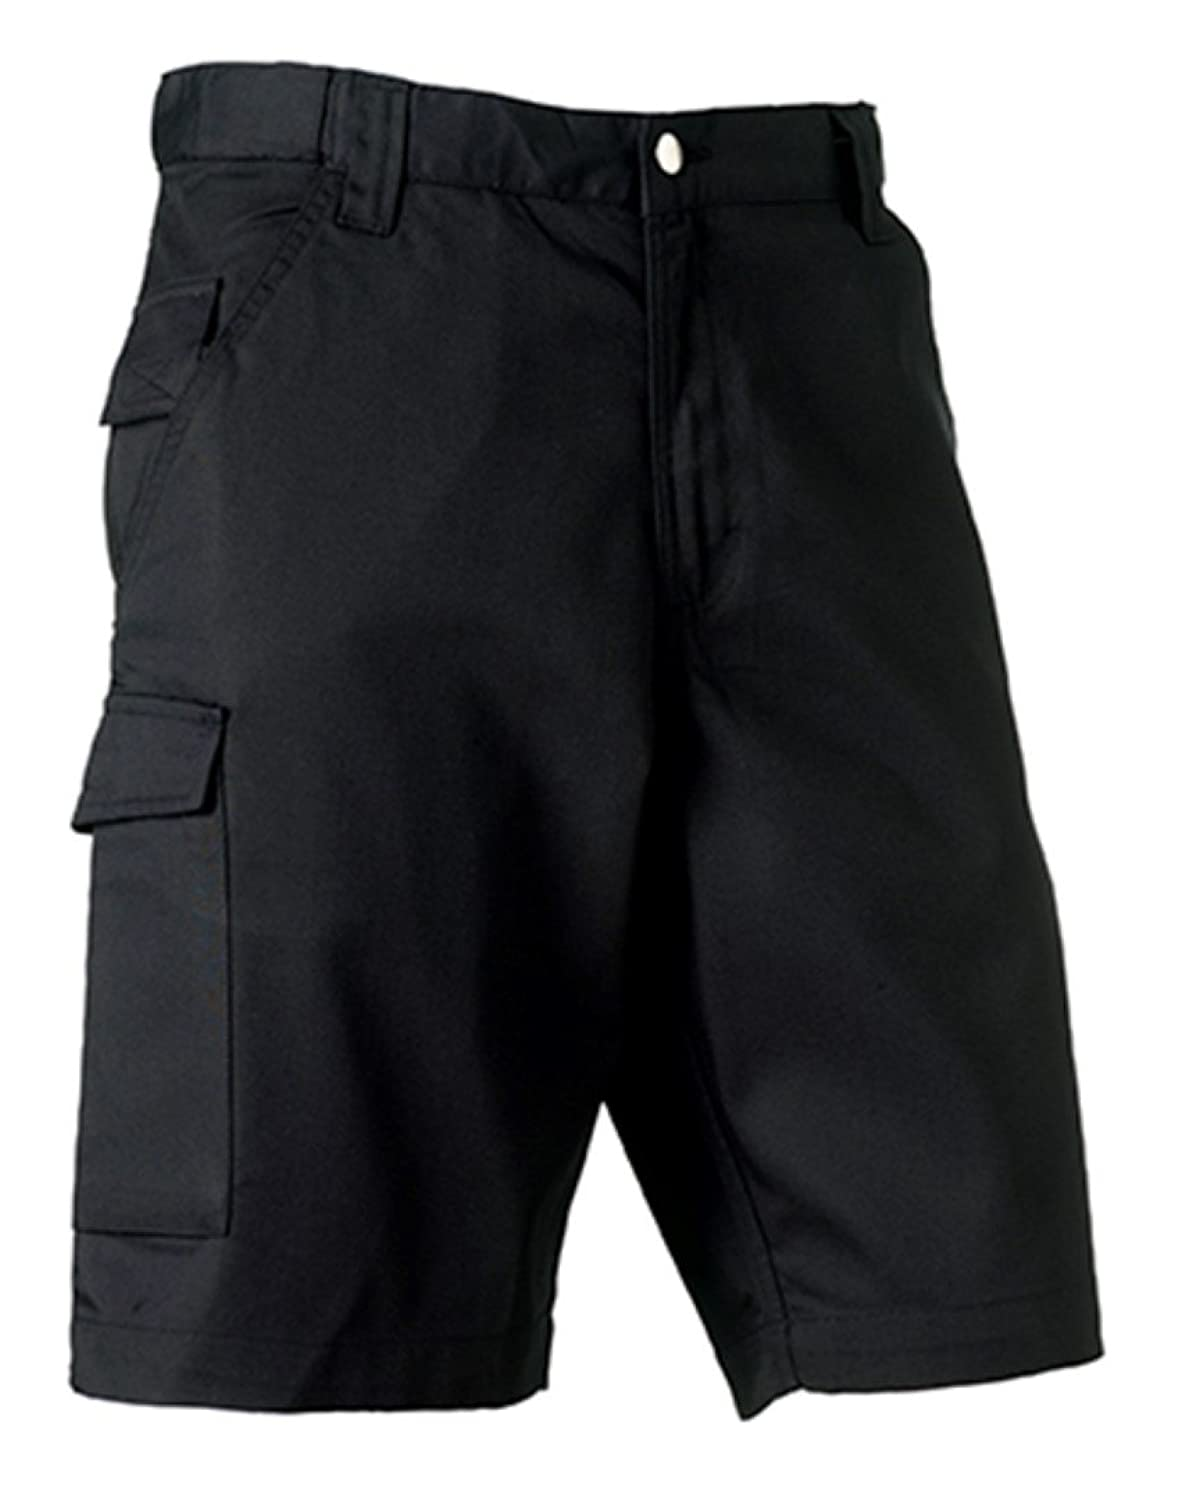 Russell Workwear Work Shorts : Color - Black : Size - 28